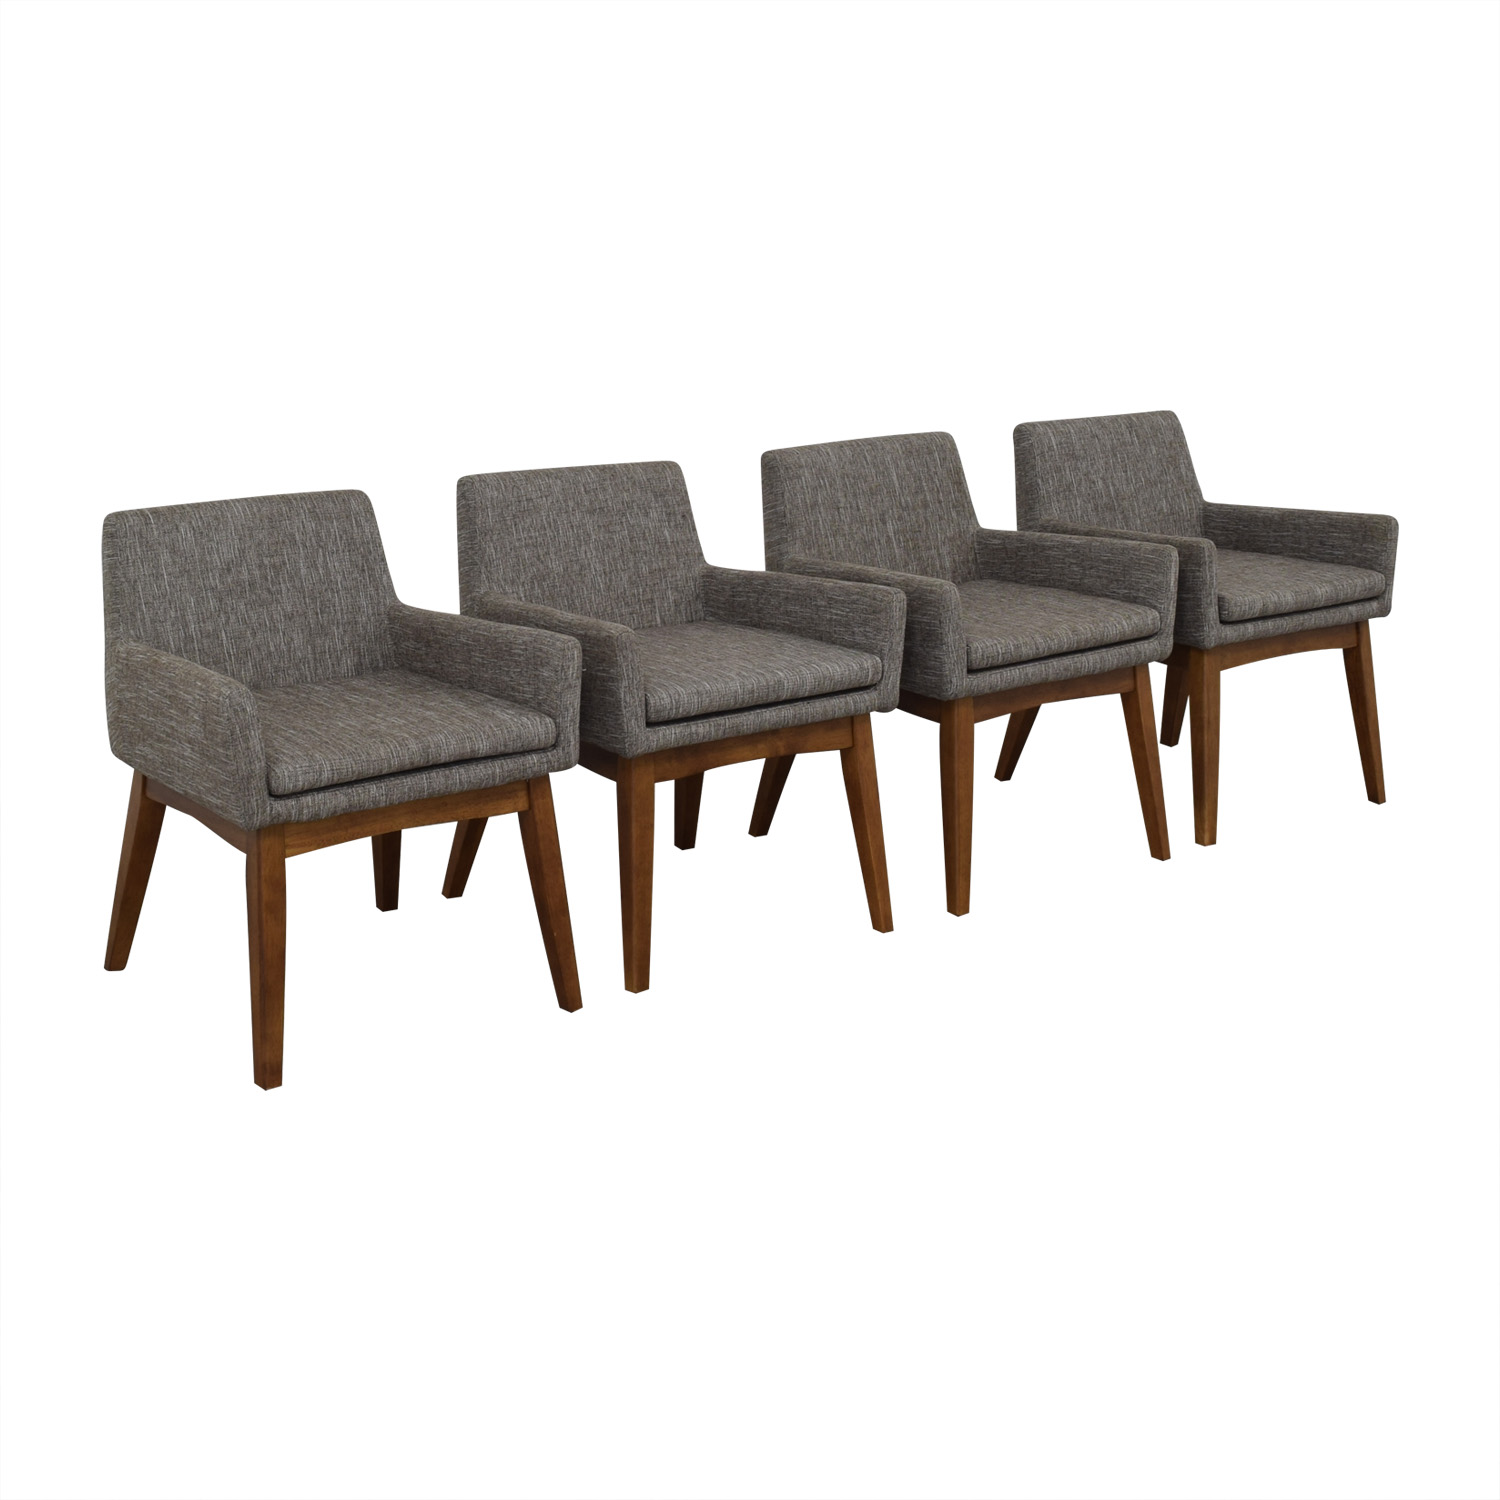 Article Article Feast Dining Chairs nyc